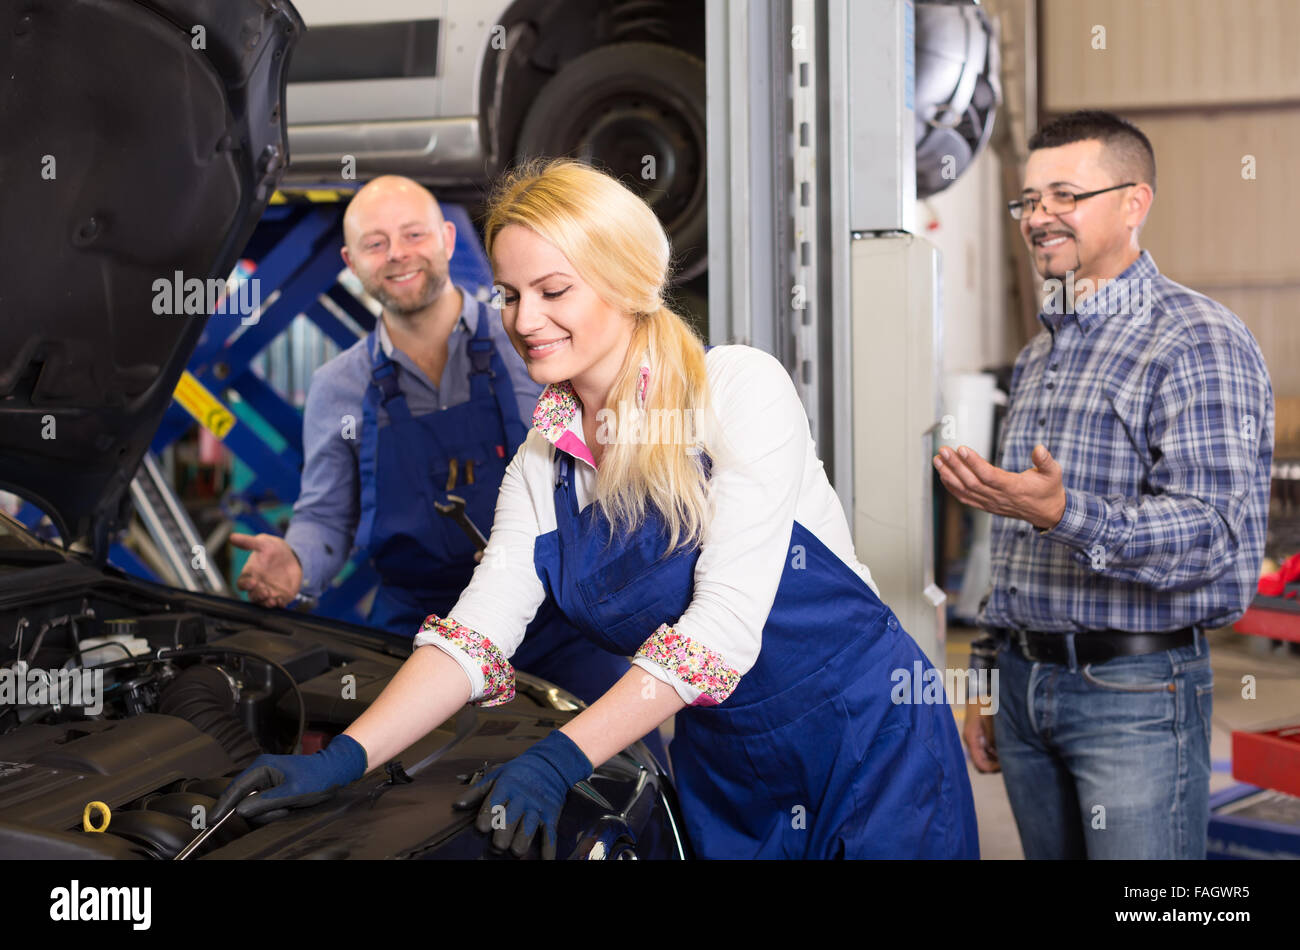 Female mechanic is fixing something under the hood of a car with a wrench while her colleague and owner are standing Stock Photo